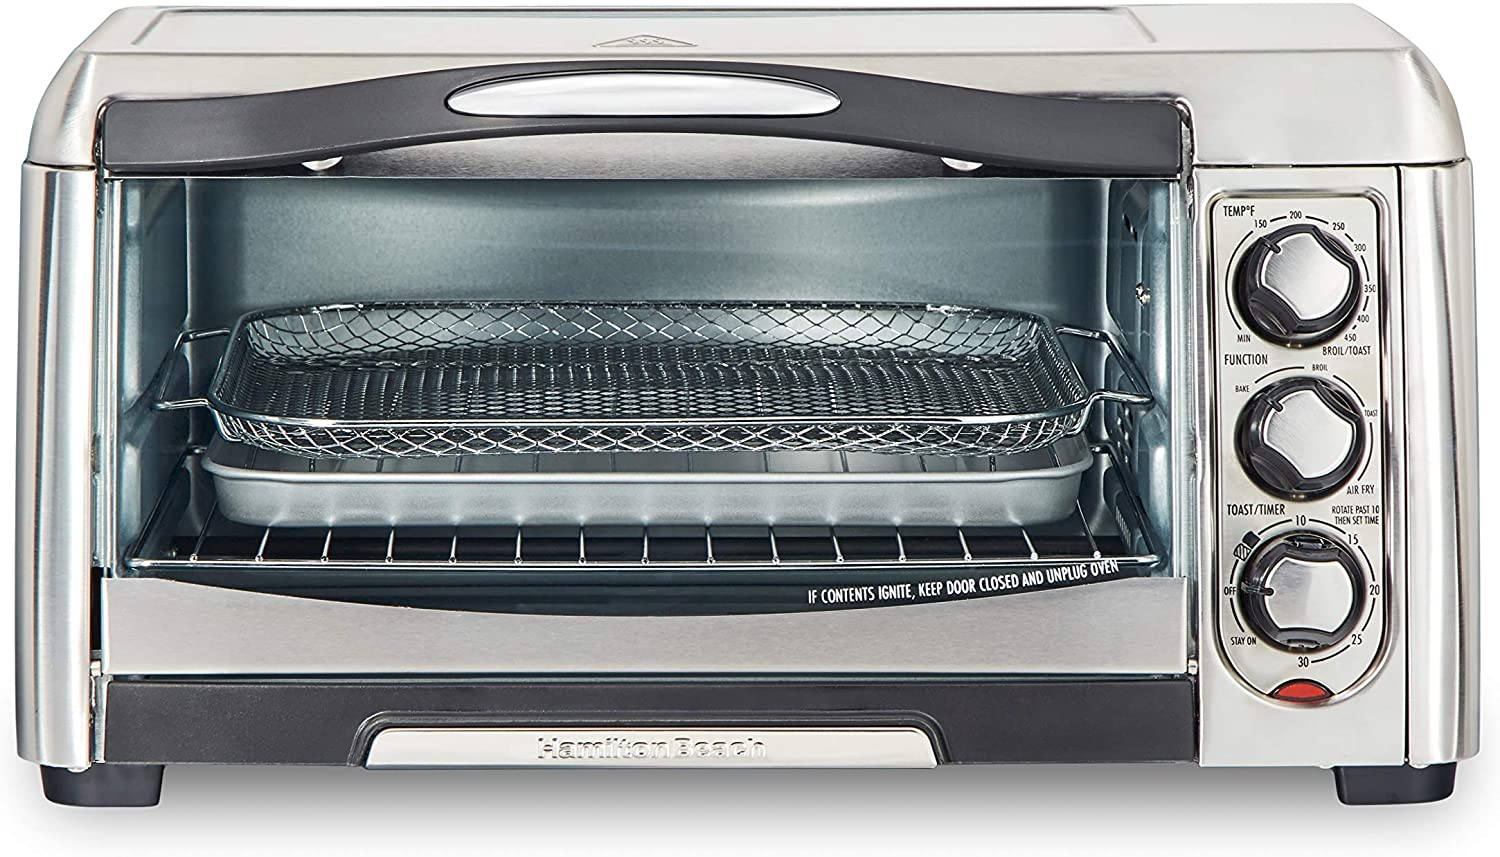 Hamilton Beach 31323 Sure-Crisp Air Fry Toaster Oven, 6 Slice Capacity, Stainless Steel